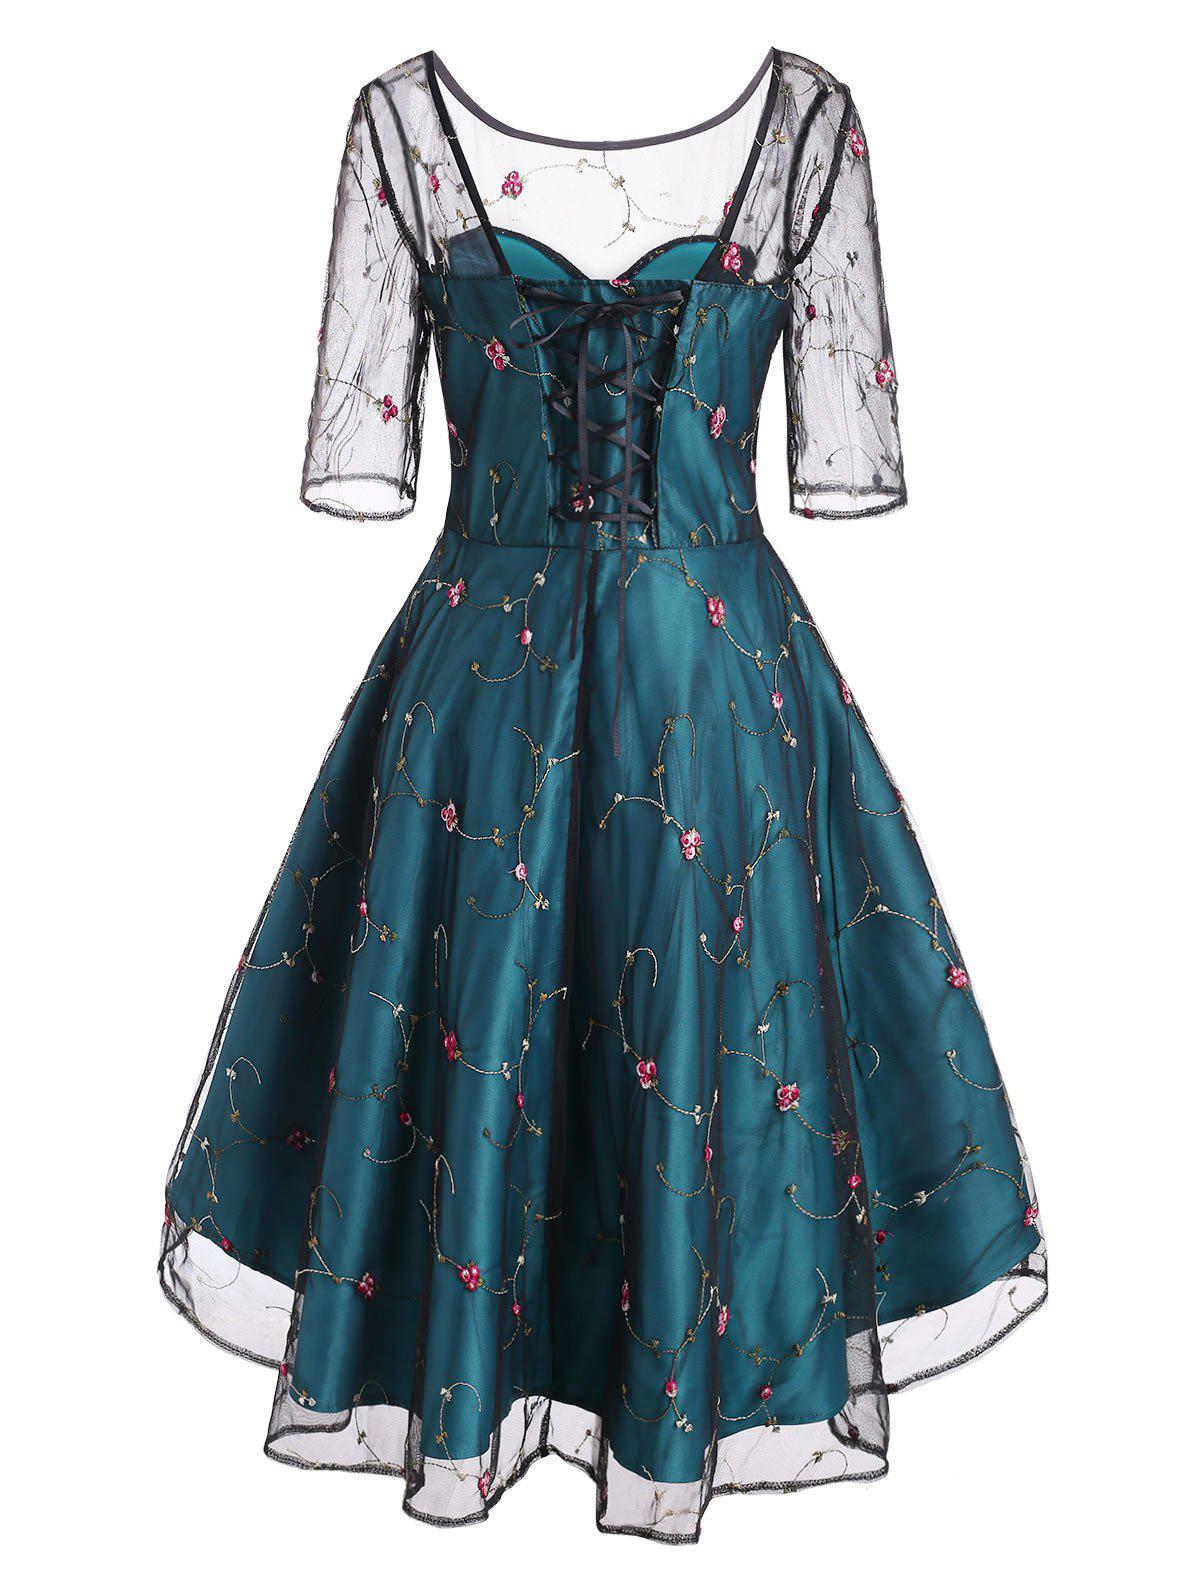 Flower Embroidered Mesh Overlay Lace Up Party Dress - multicolor XL